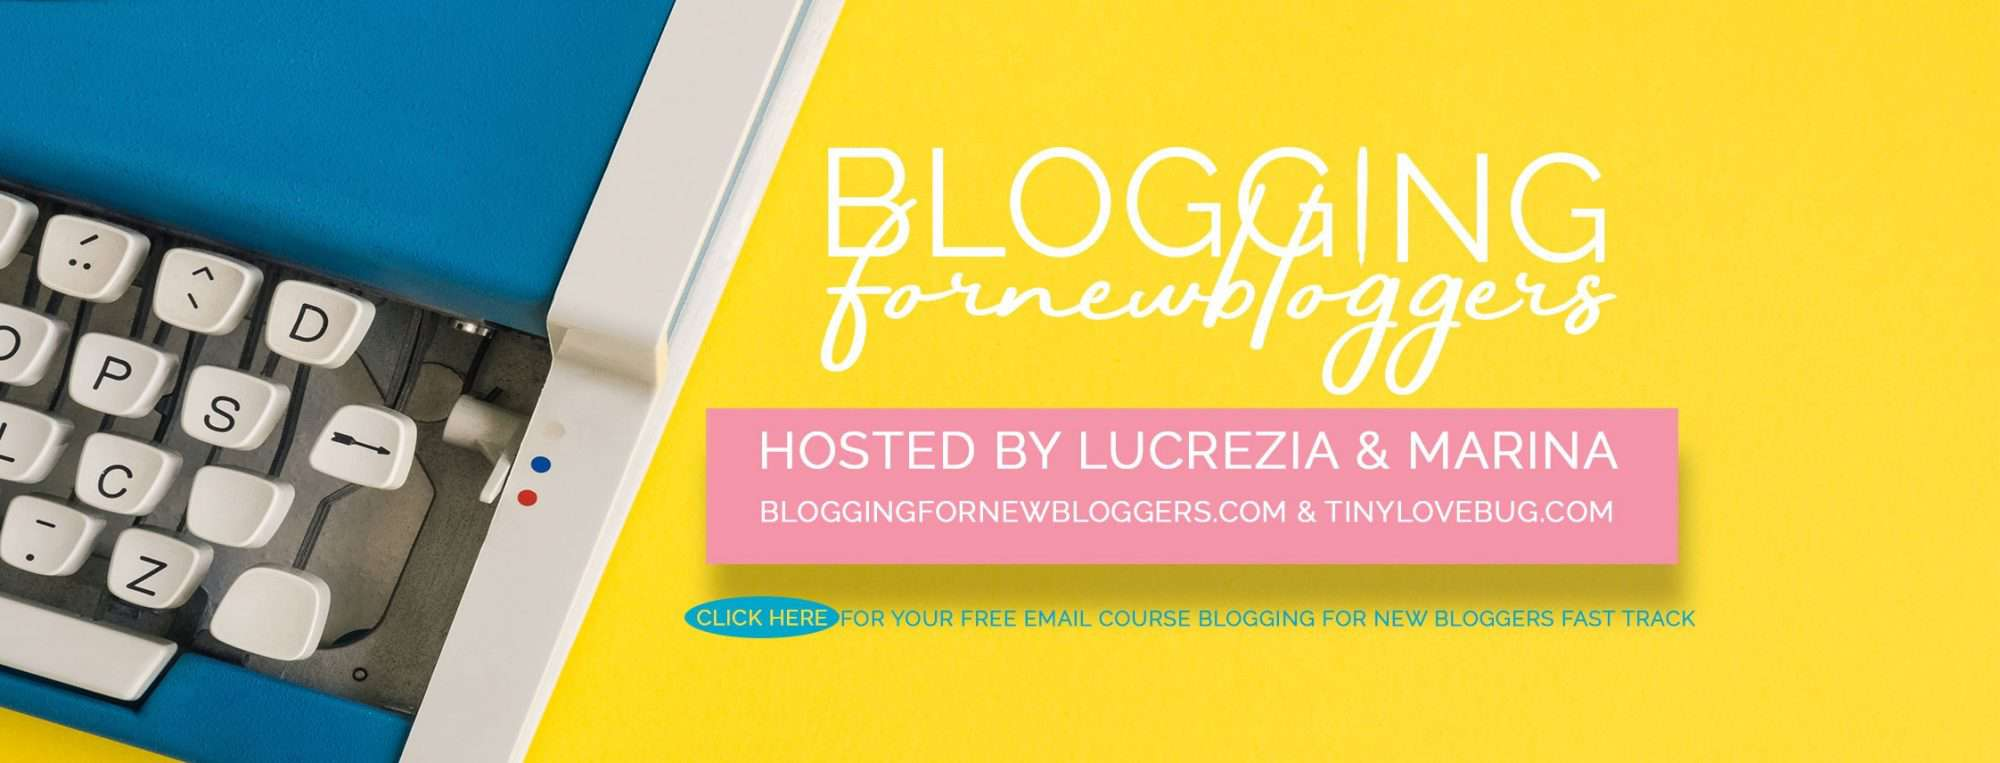 Blogging for New Bloggers